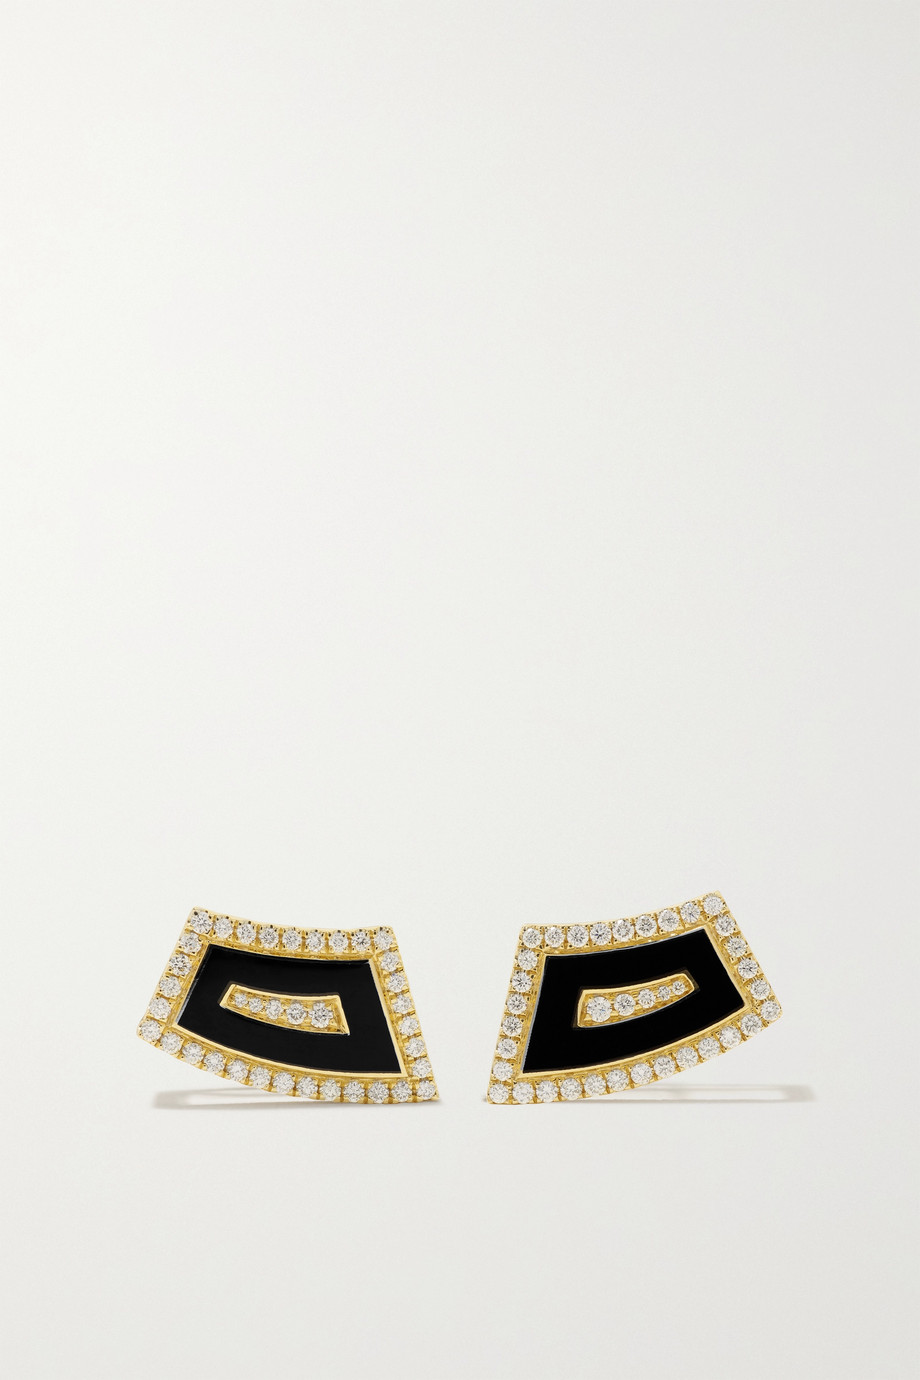 STATE PROPERTY Tabei 18-karat gold, enamel and diamond earrings